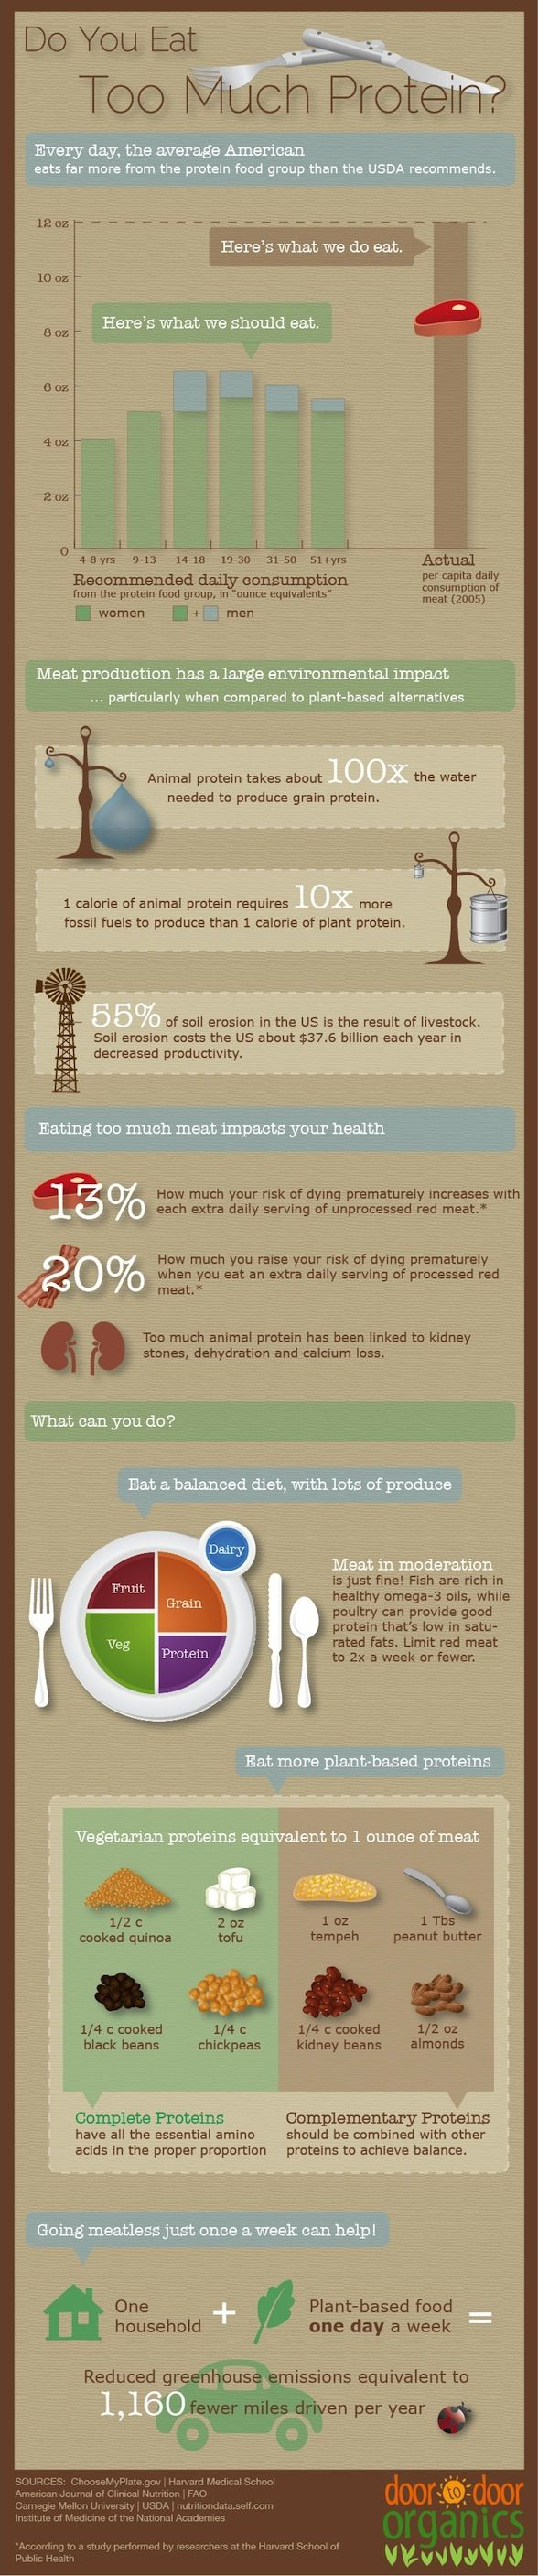 Infographic: The Truth About Protein